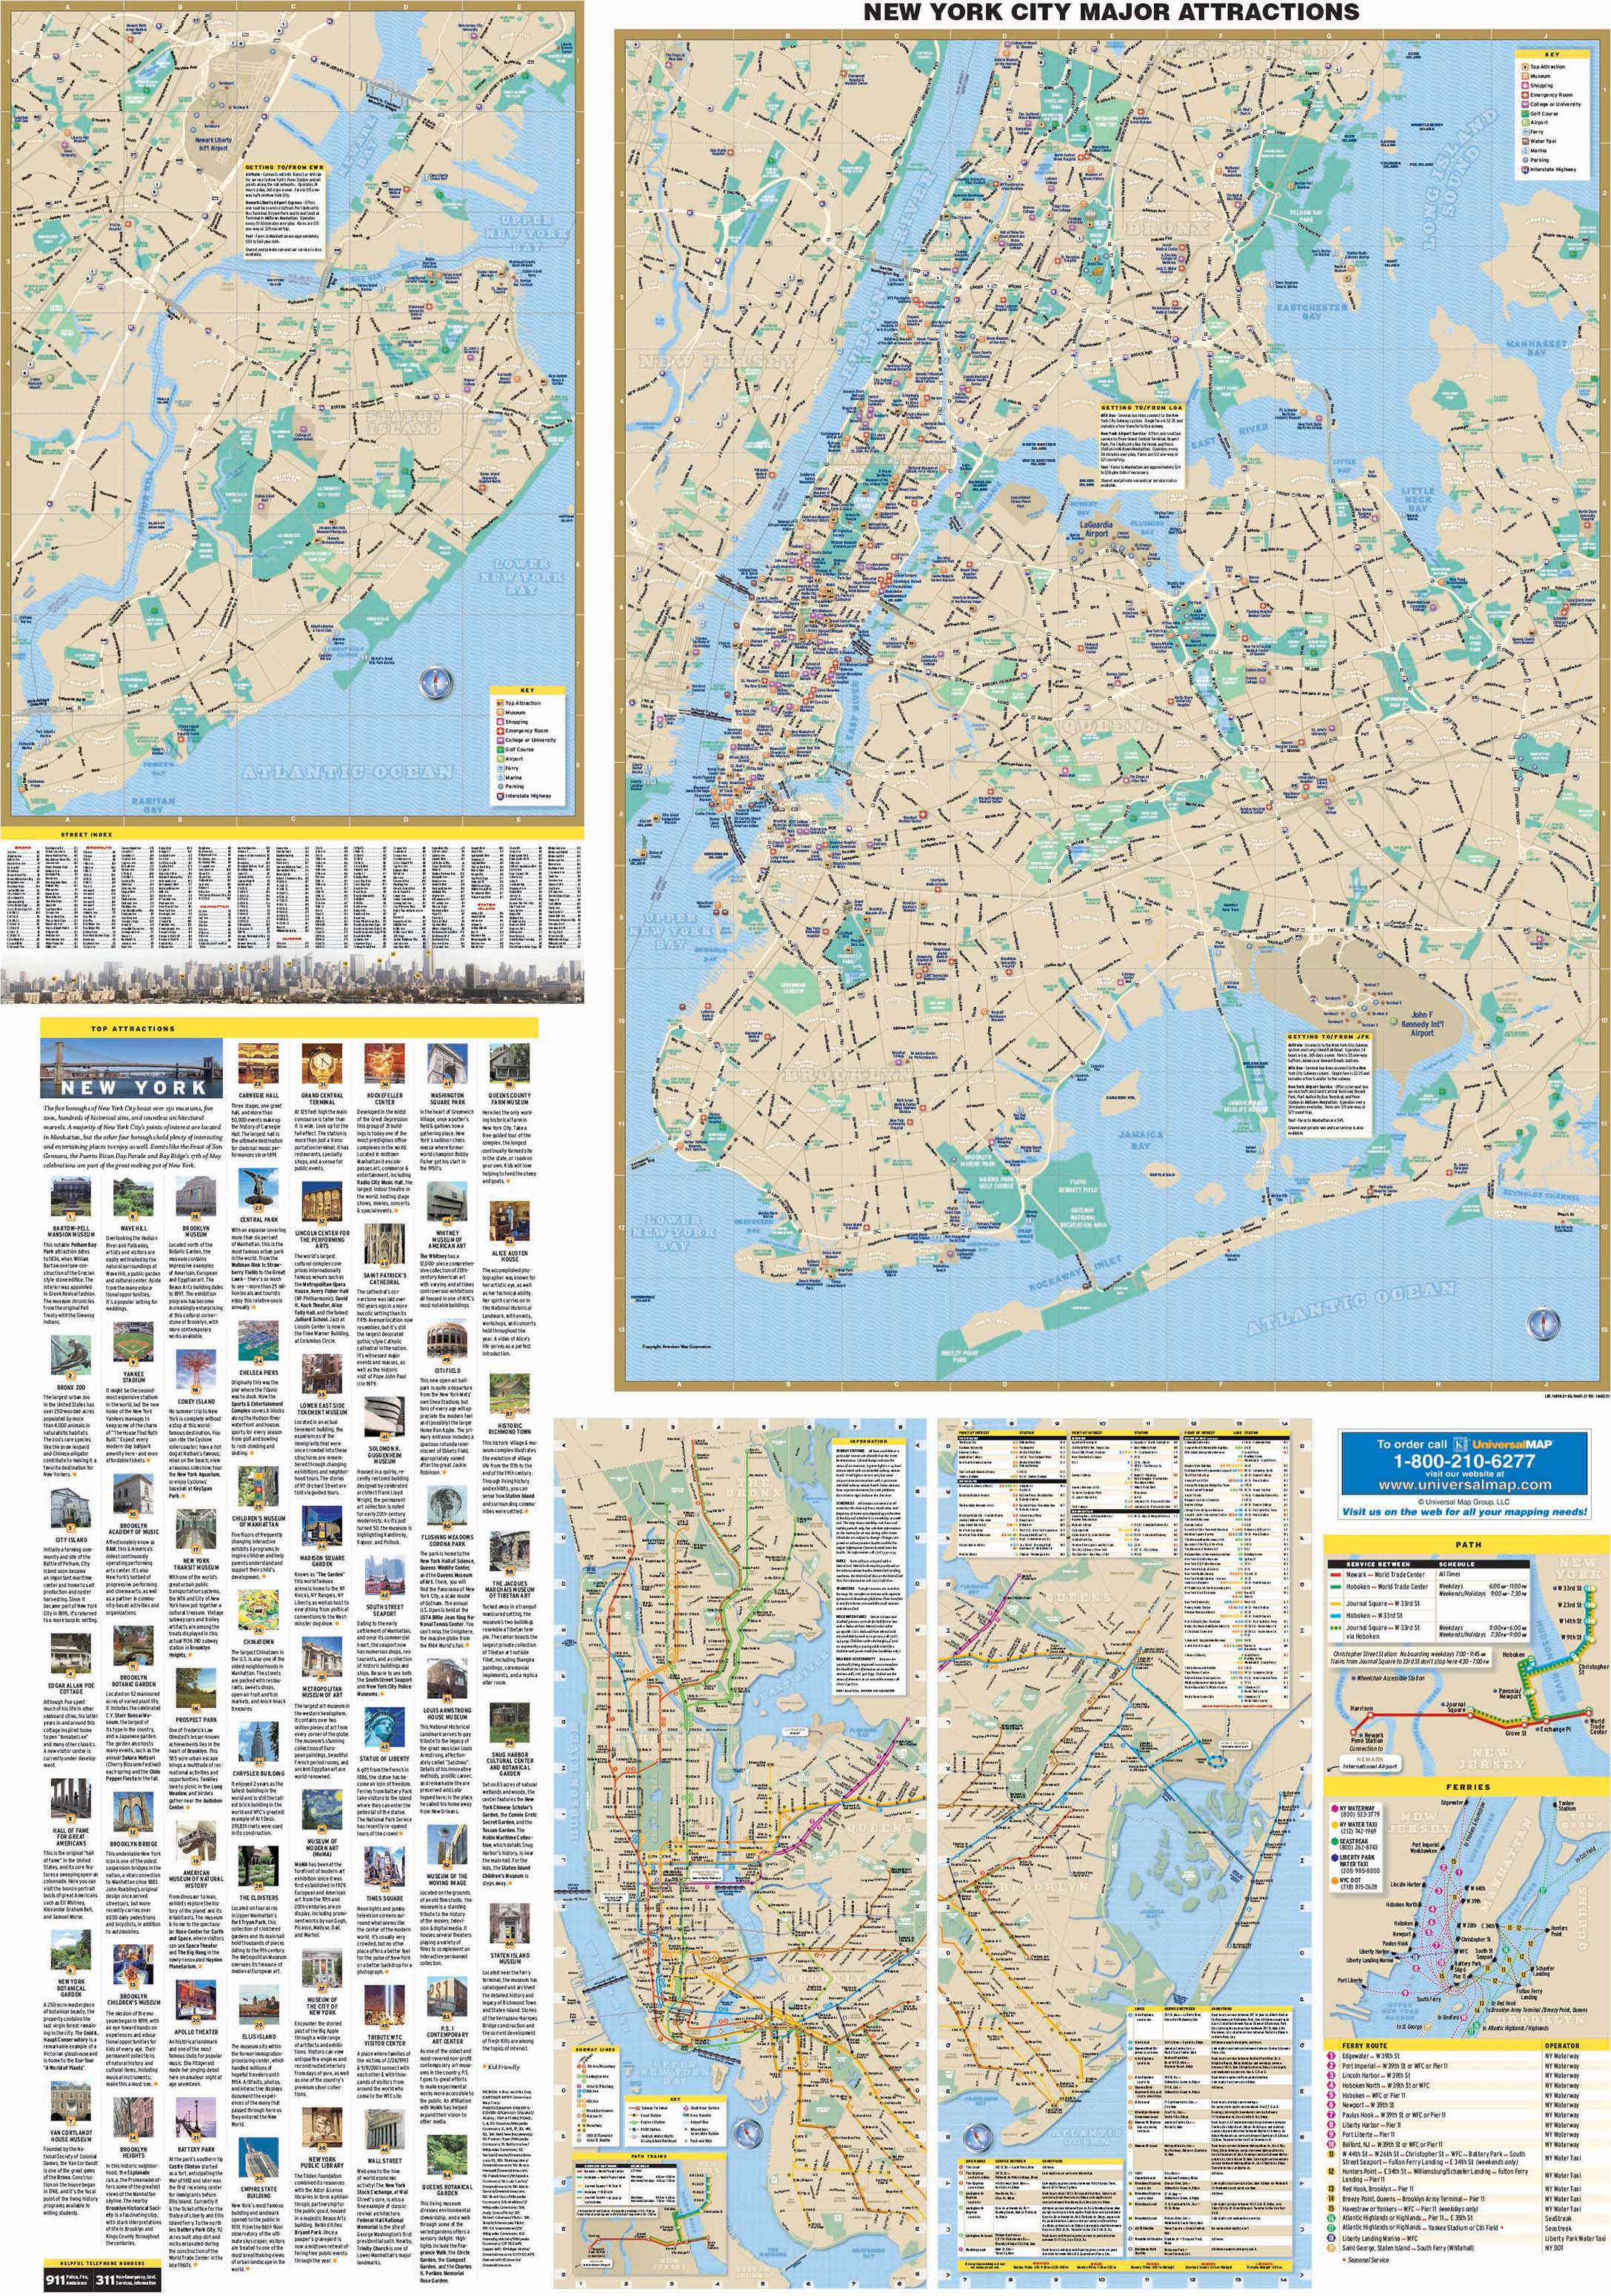 New York City, NY 5 Boroughs Major Attractions Wall Map ...